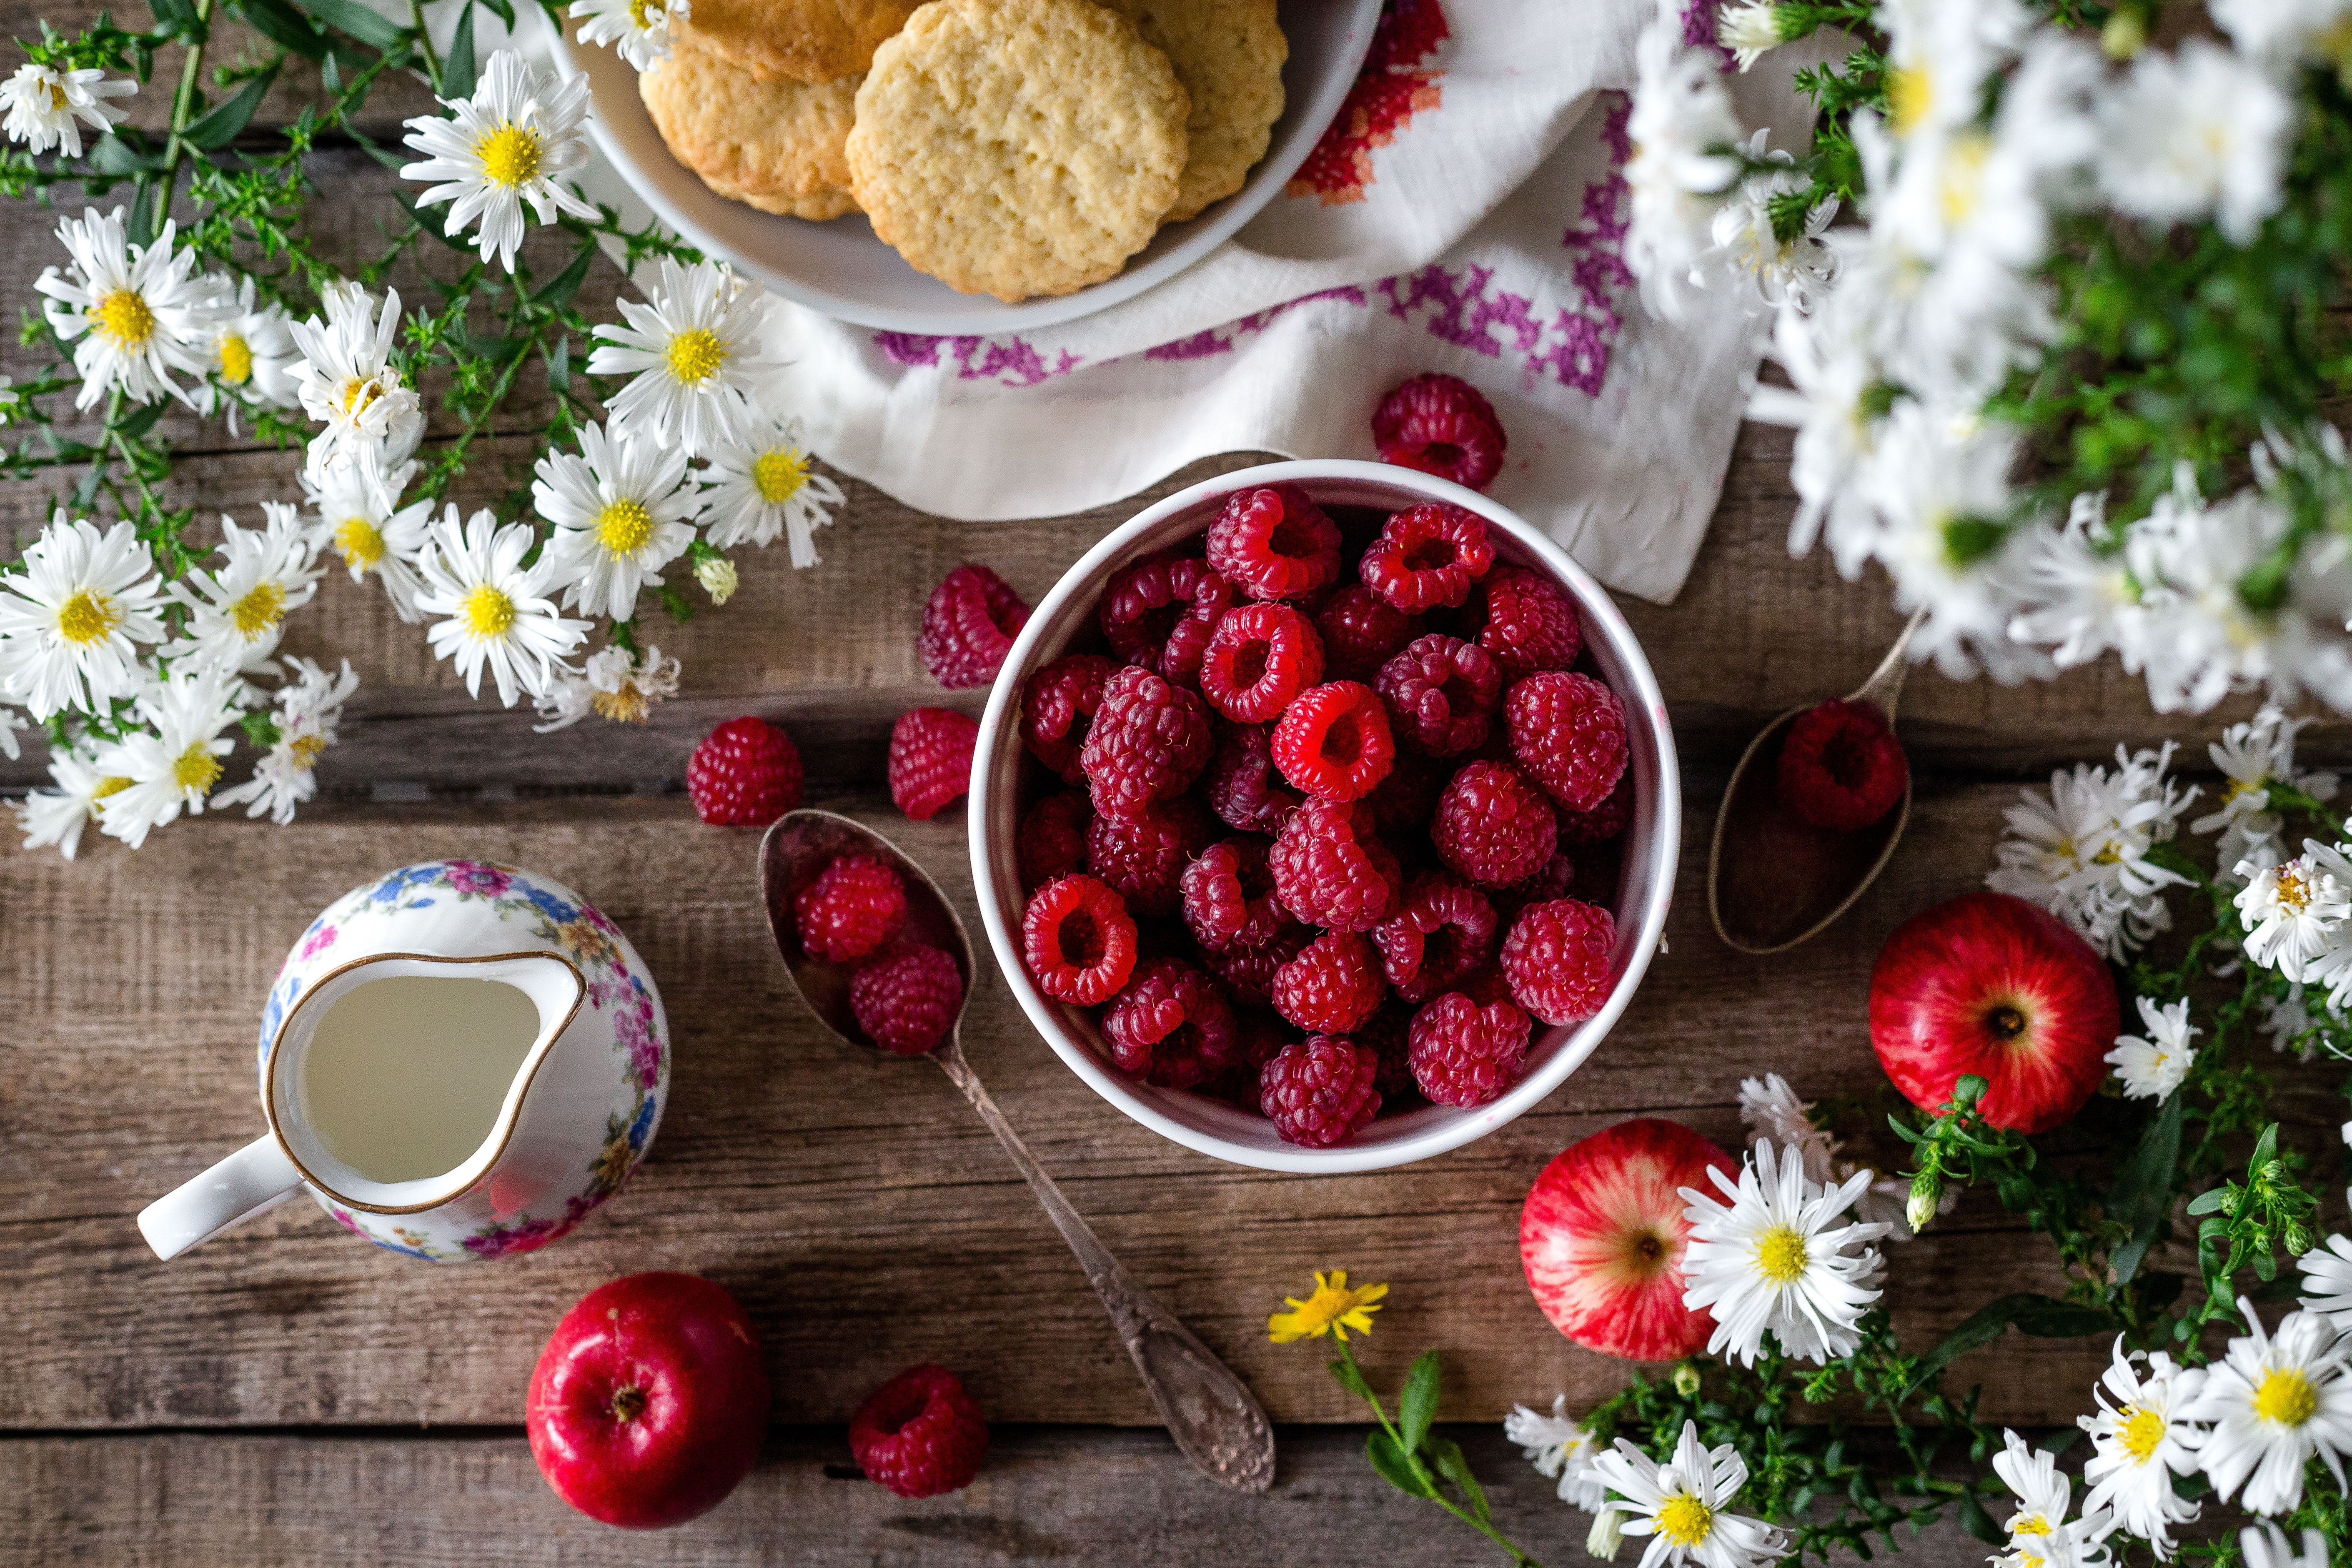 Fruits and flower on flowers photo